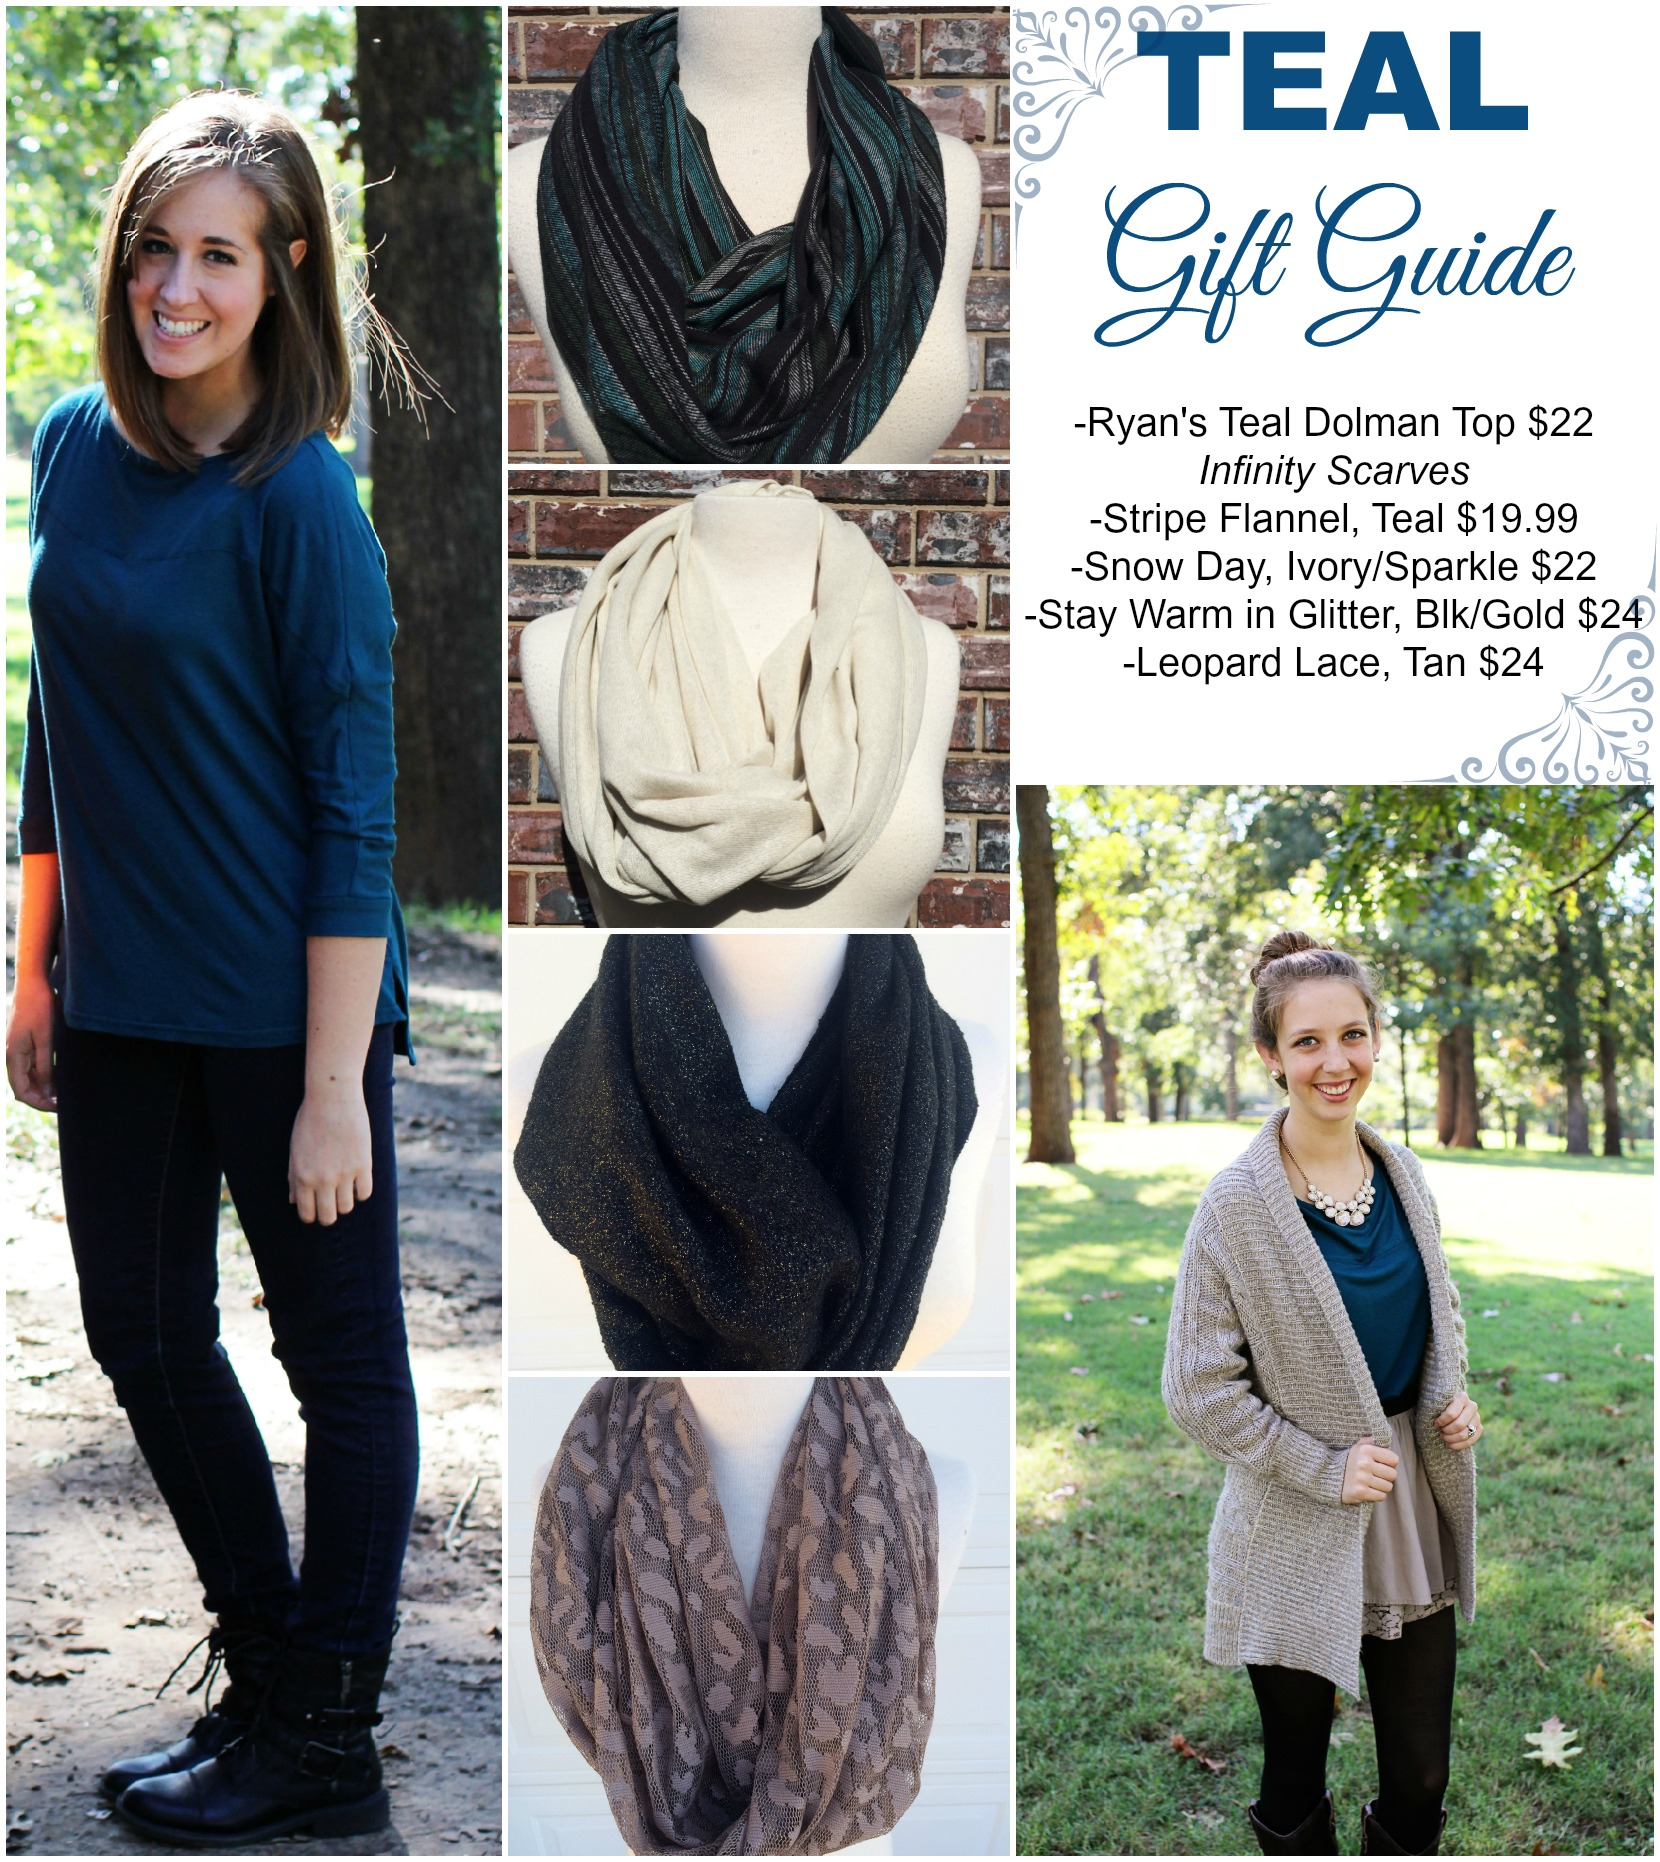 Teal Gift Guide